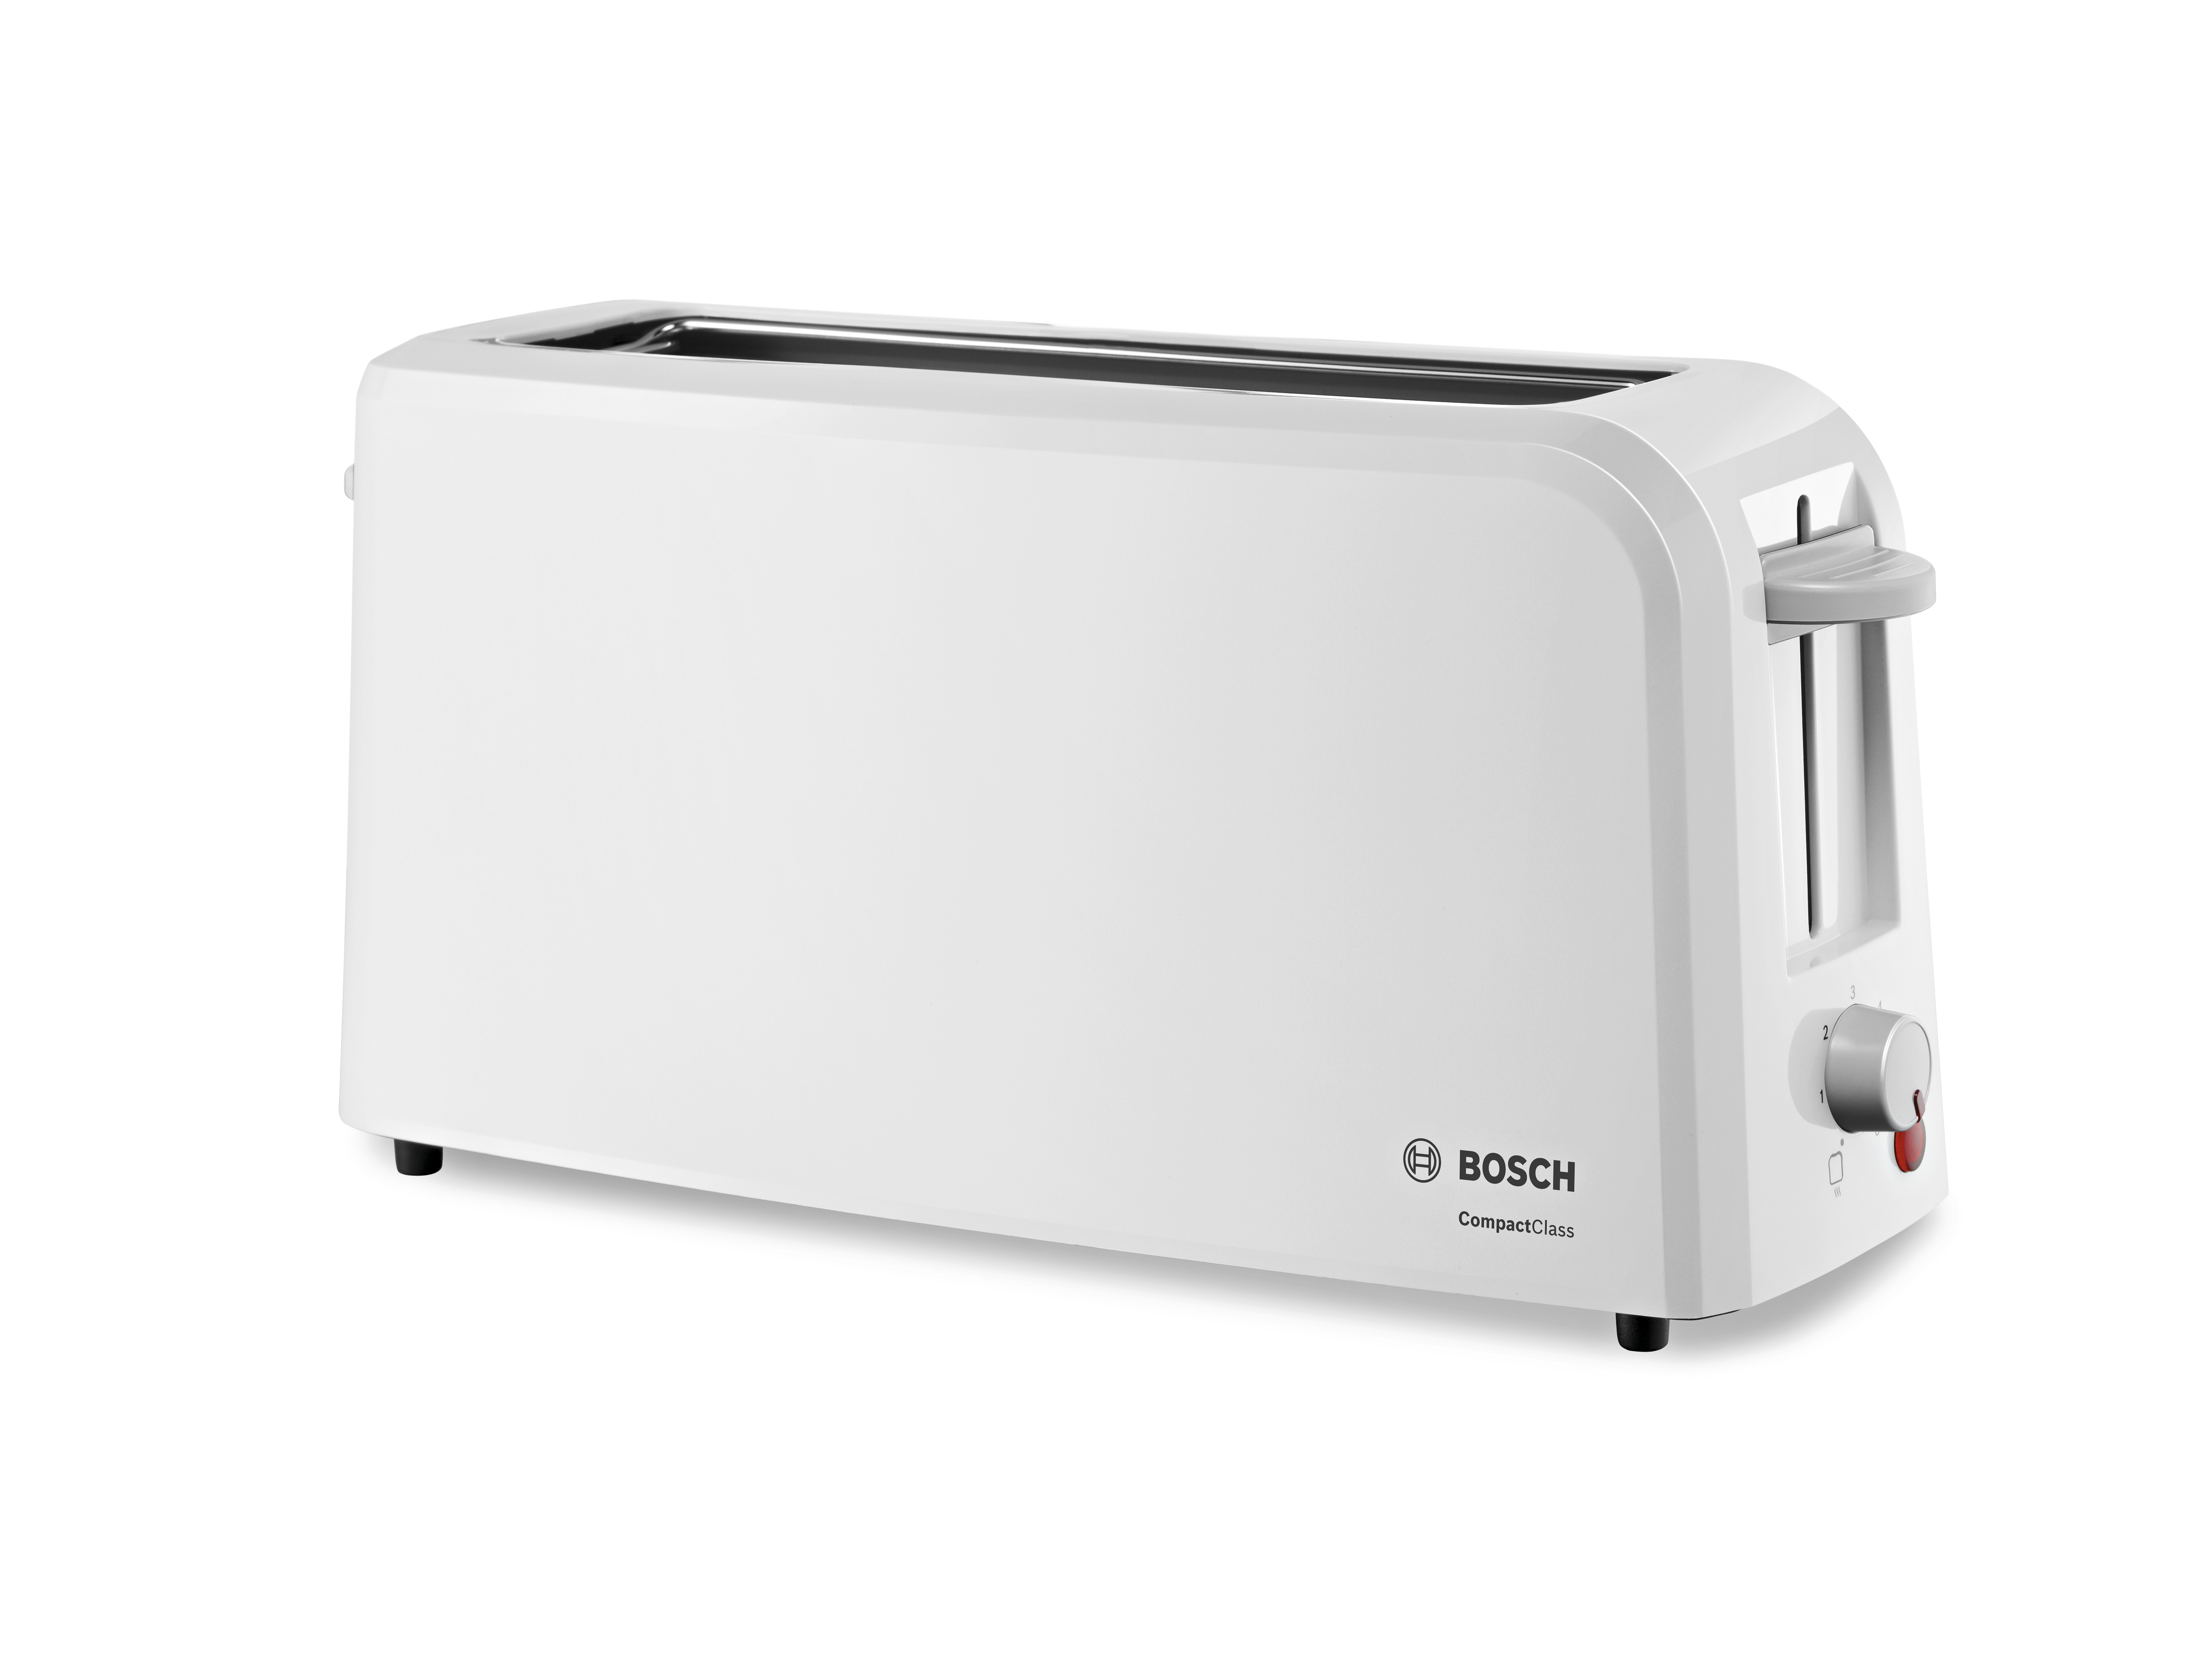 BOSCH Toaster Compact Class TAT3A004 wit